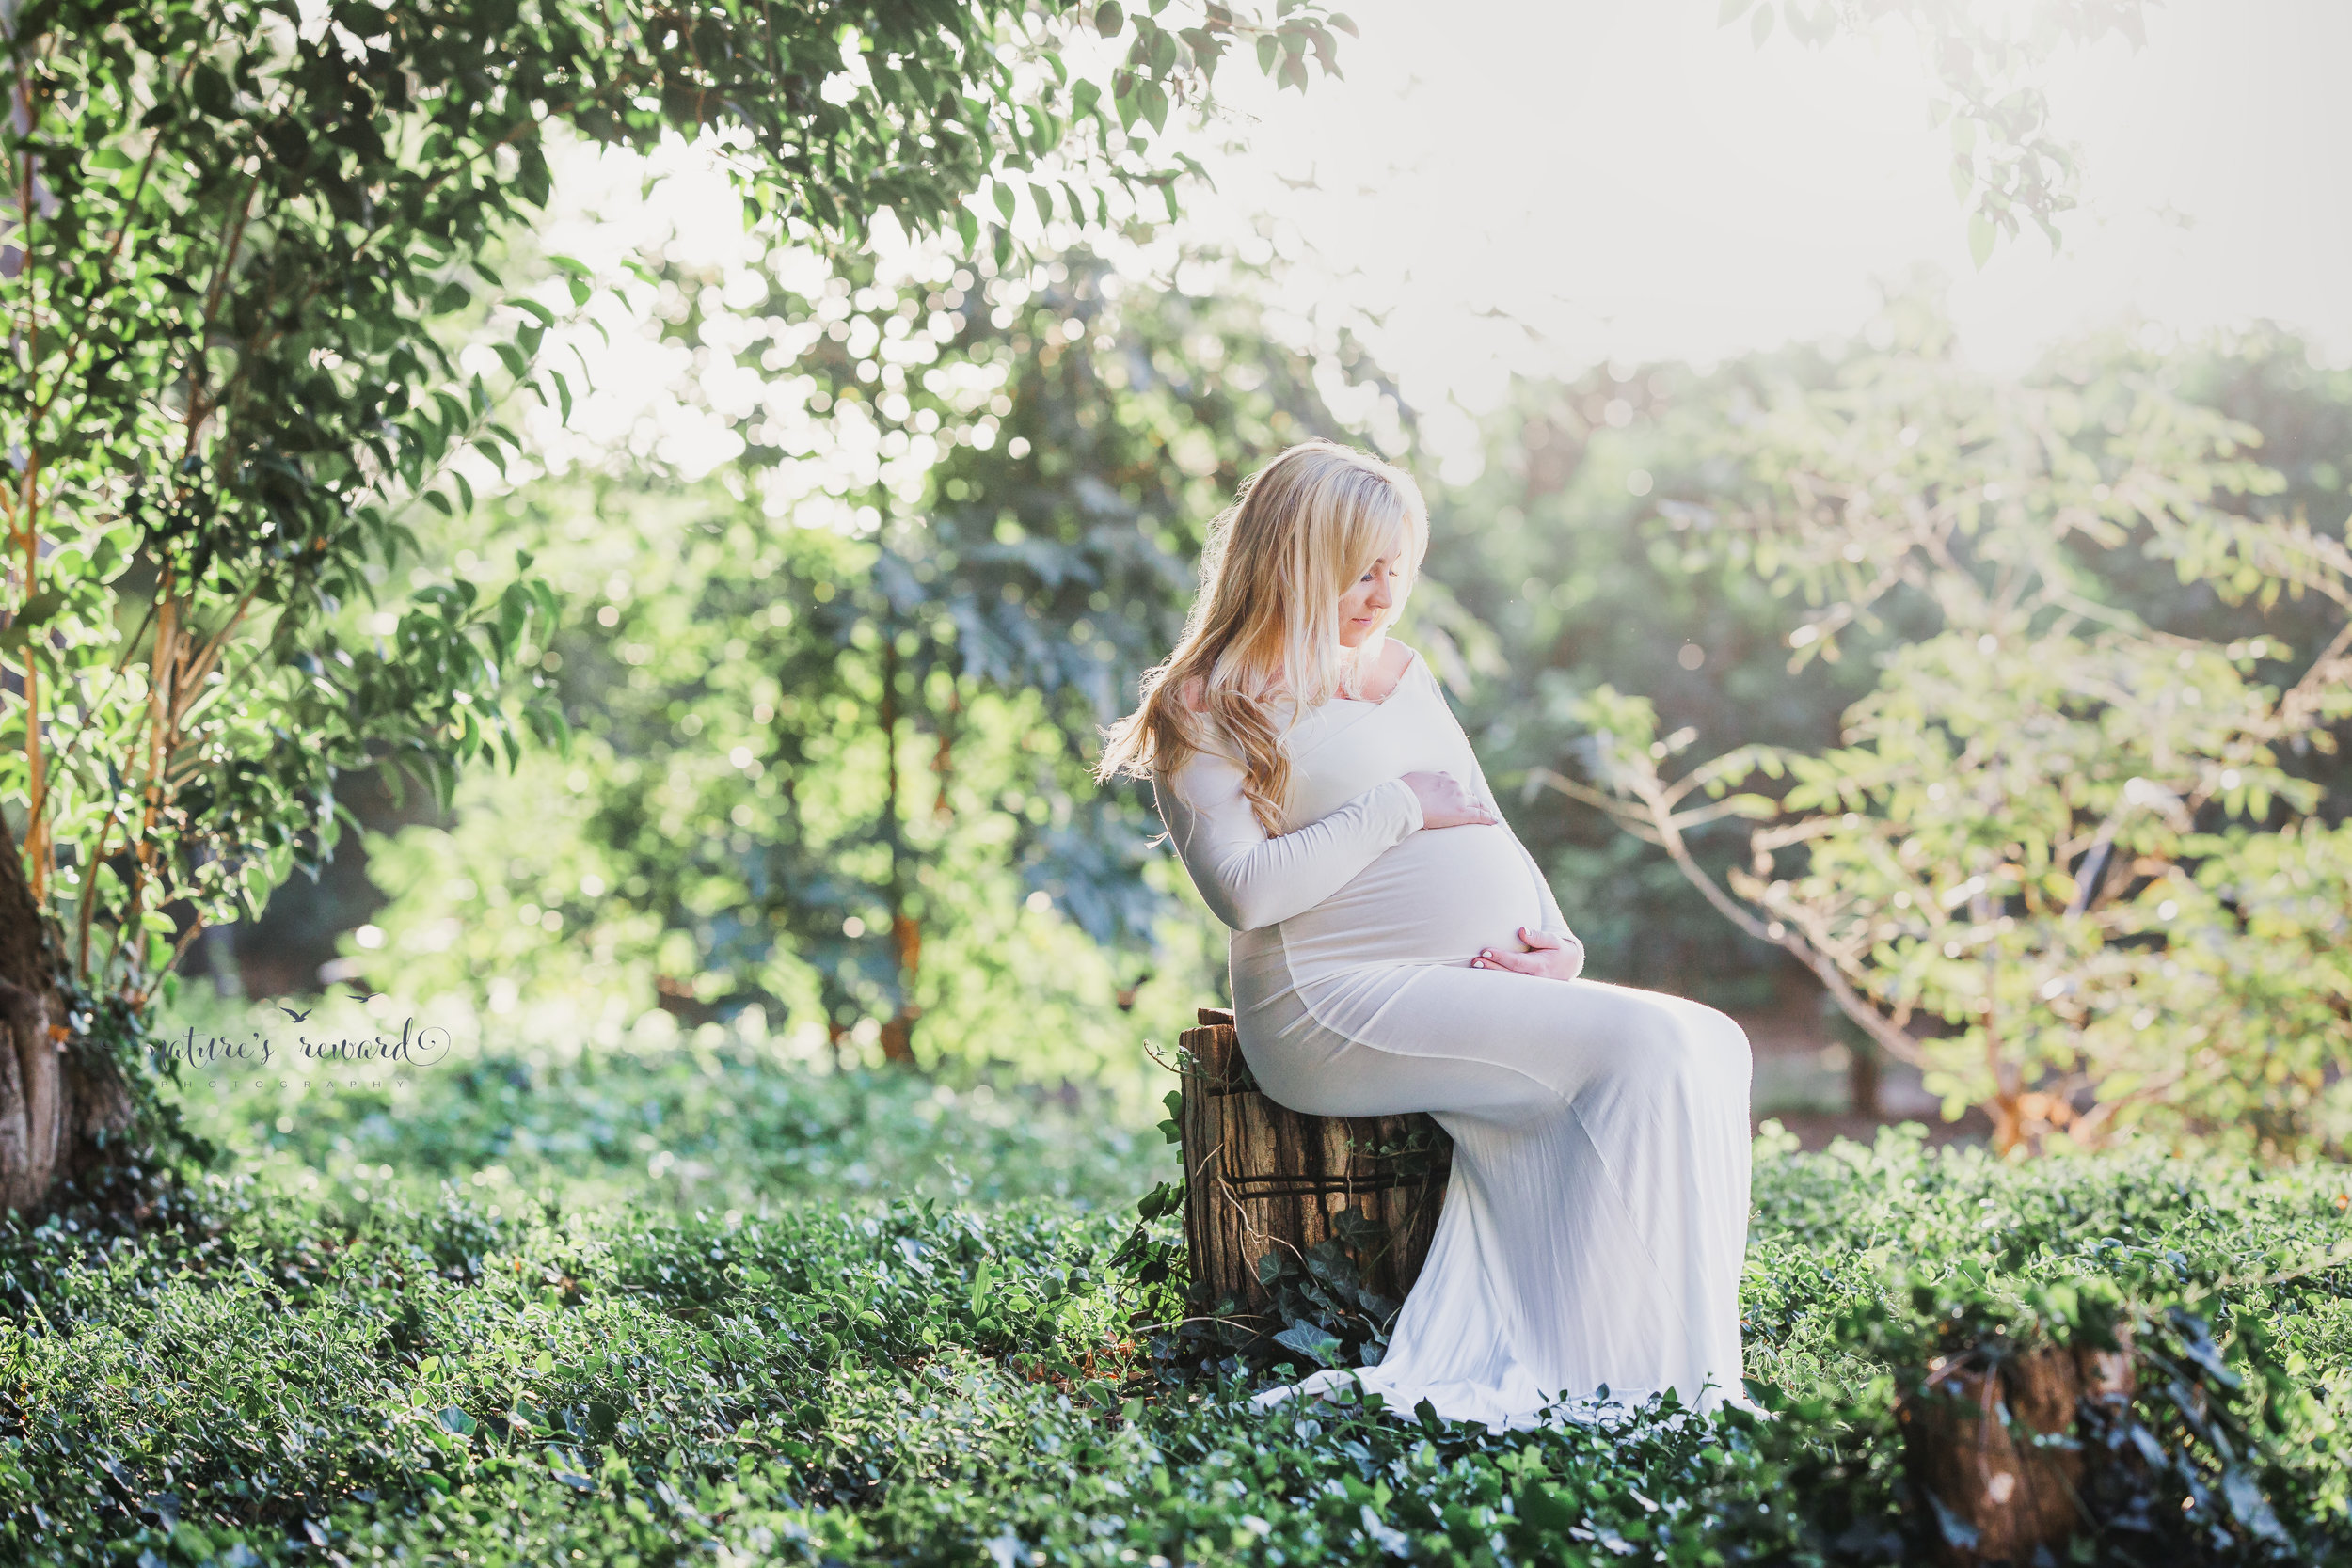 Stunning Expecting mother in a white gown in this ethereal maternity portrait by Nature's Reward Photography